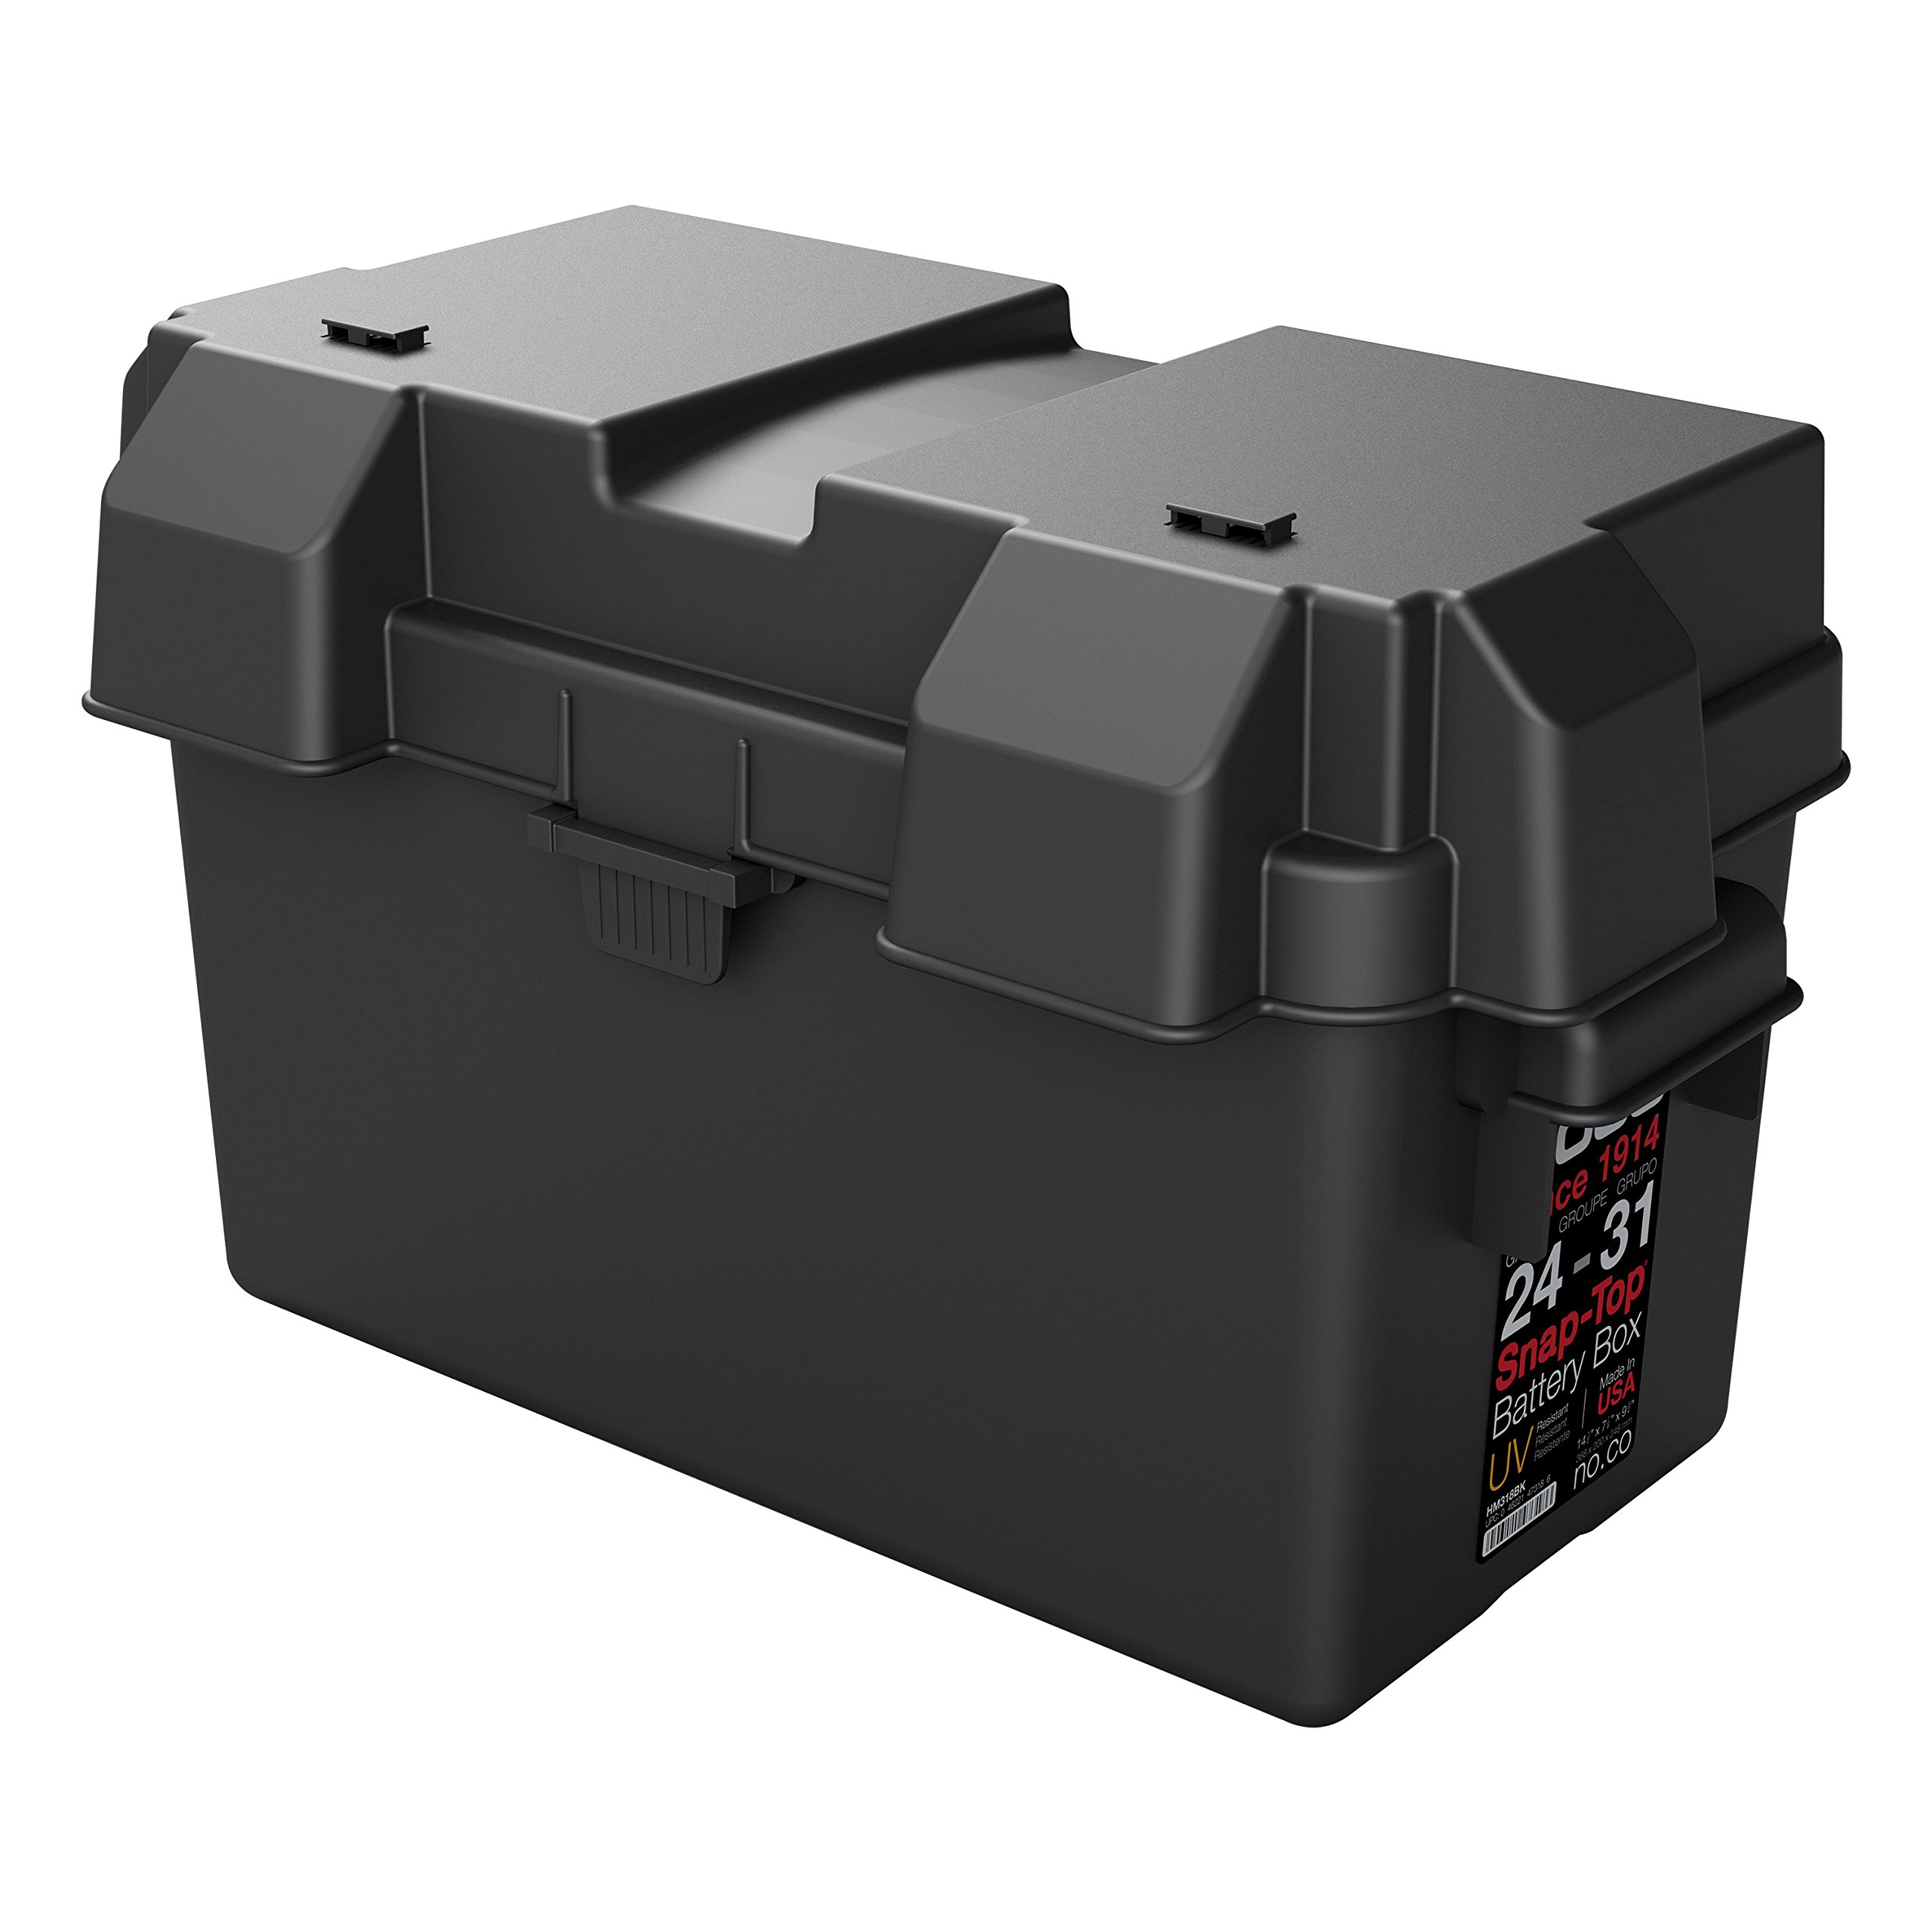 Noco Hm318bks Group 24 31 Snap Top Battery Box For